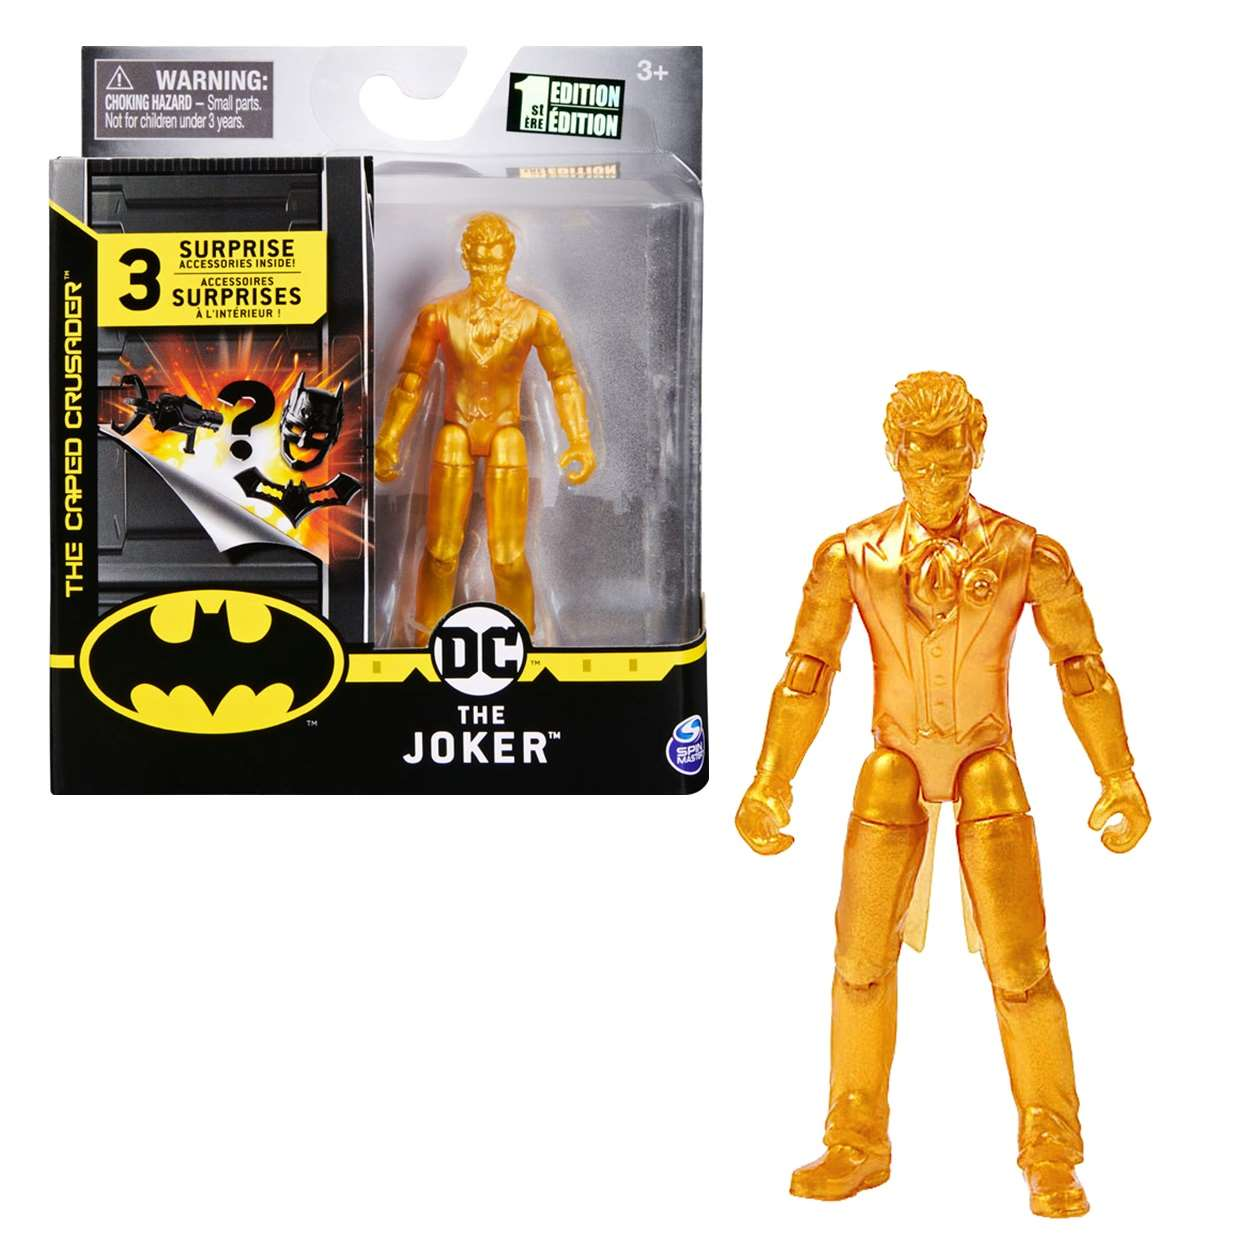 The Joker Gold Figura The Caped Crusader Spin Master